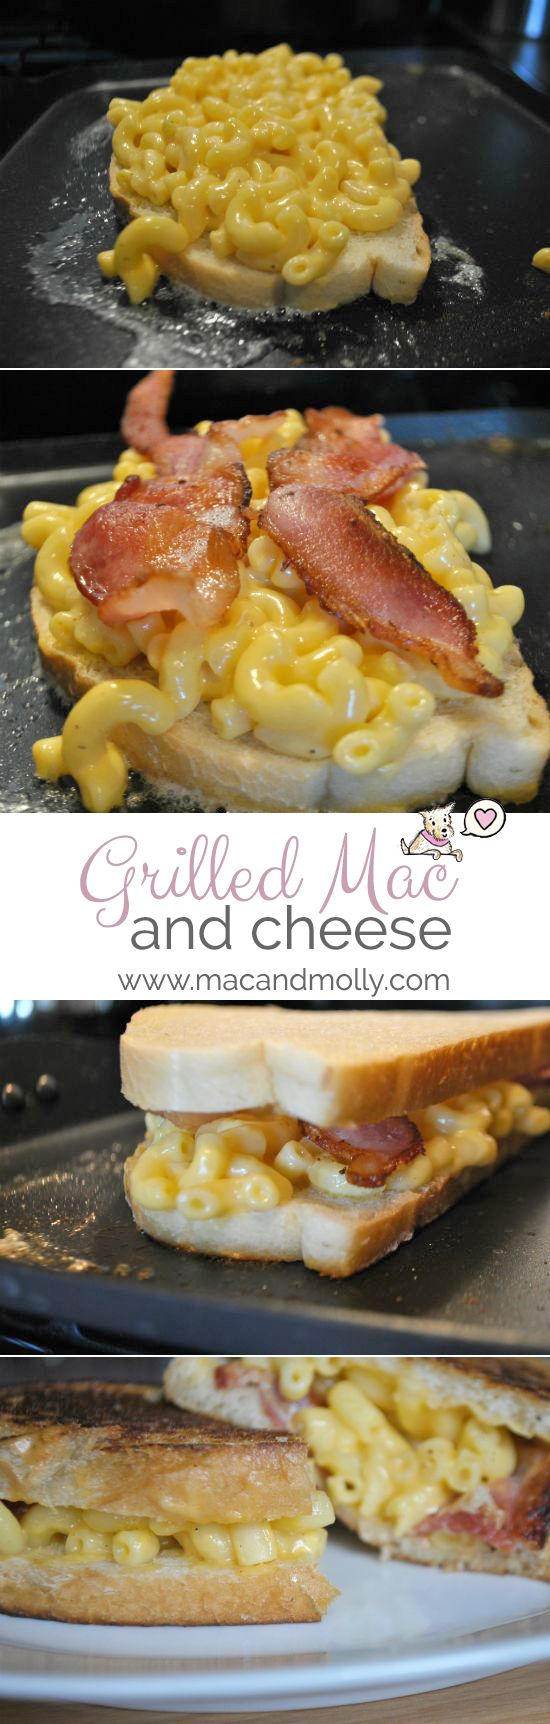 Grilled mac and cheese recipe